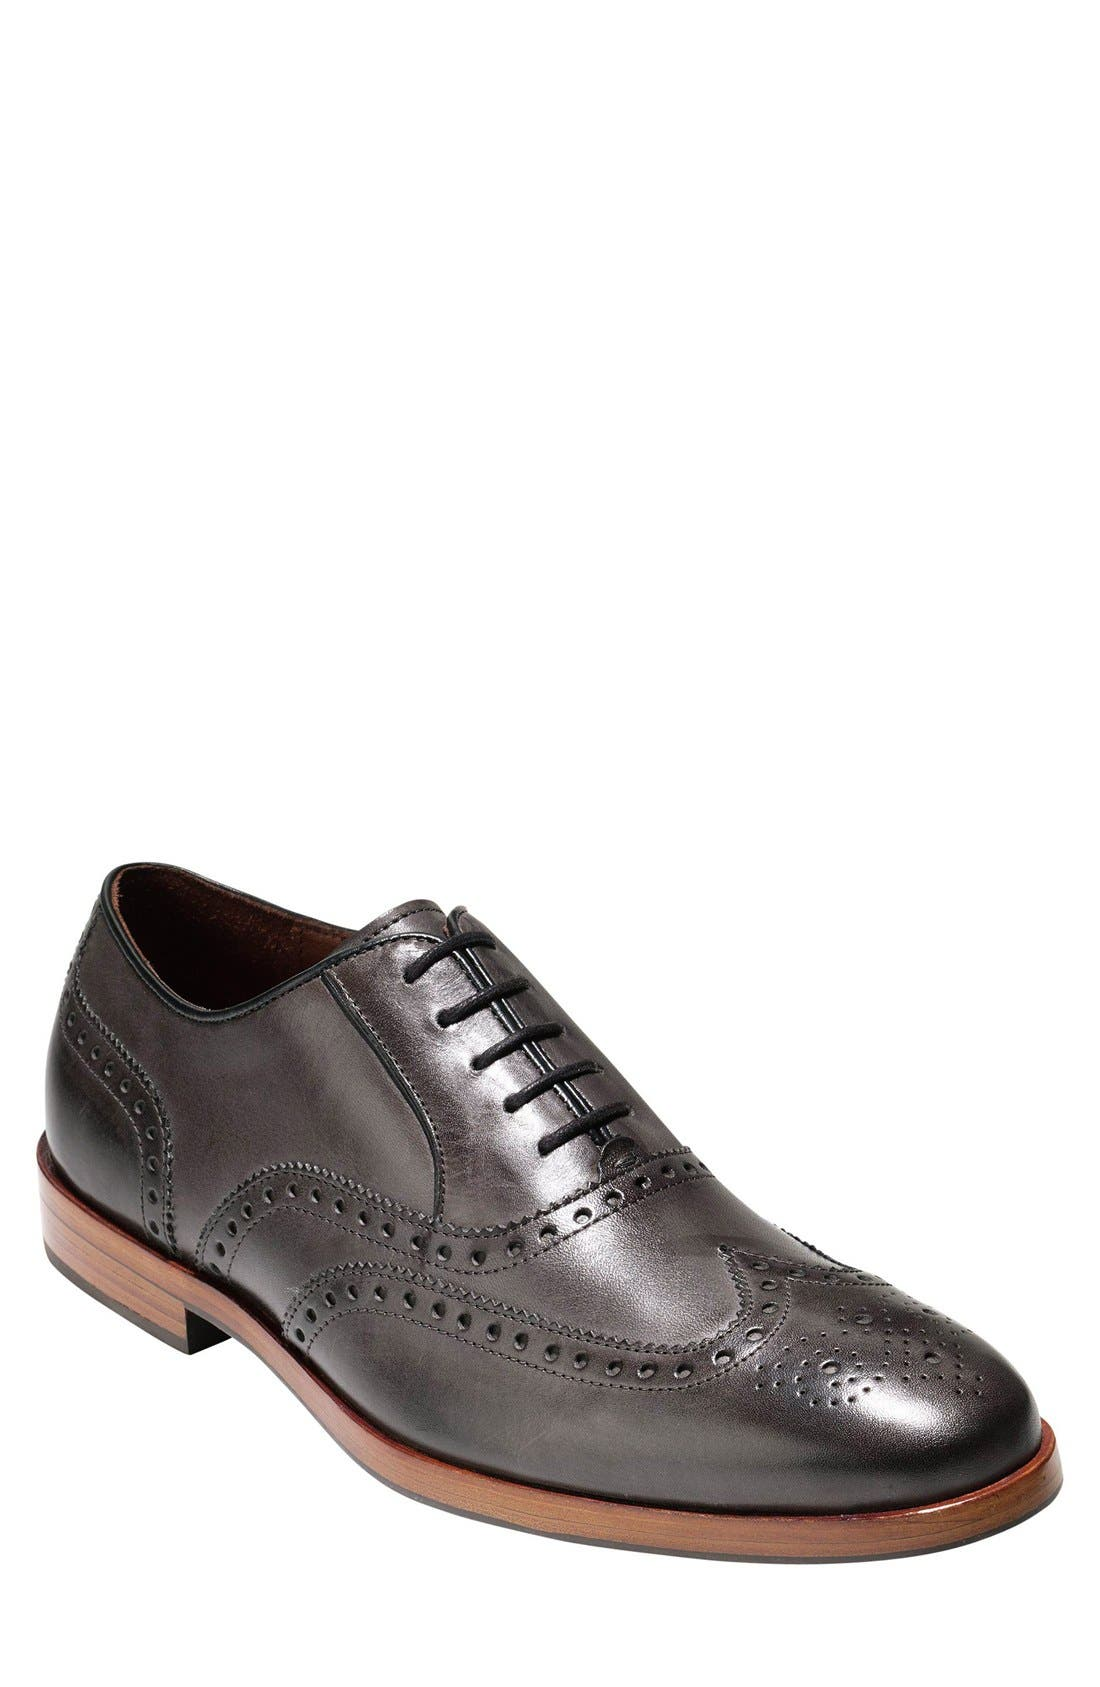 Hamilton Wingtip,                         Main,                         color, Dark Grey